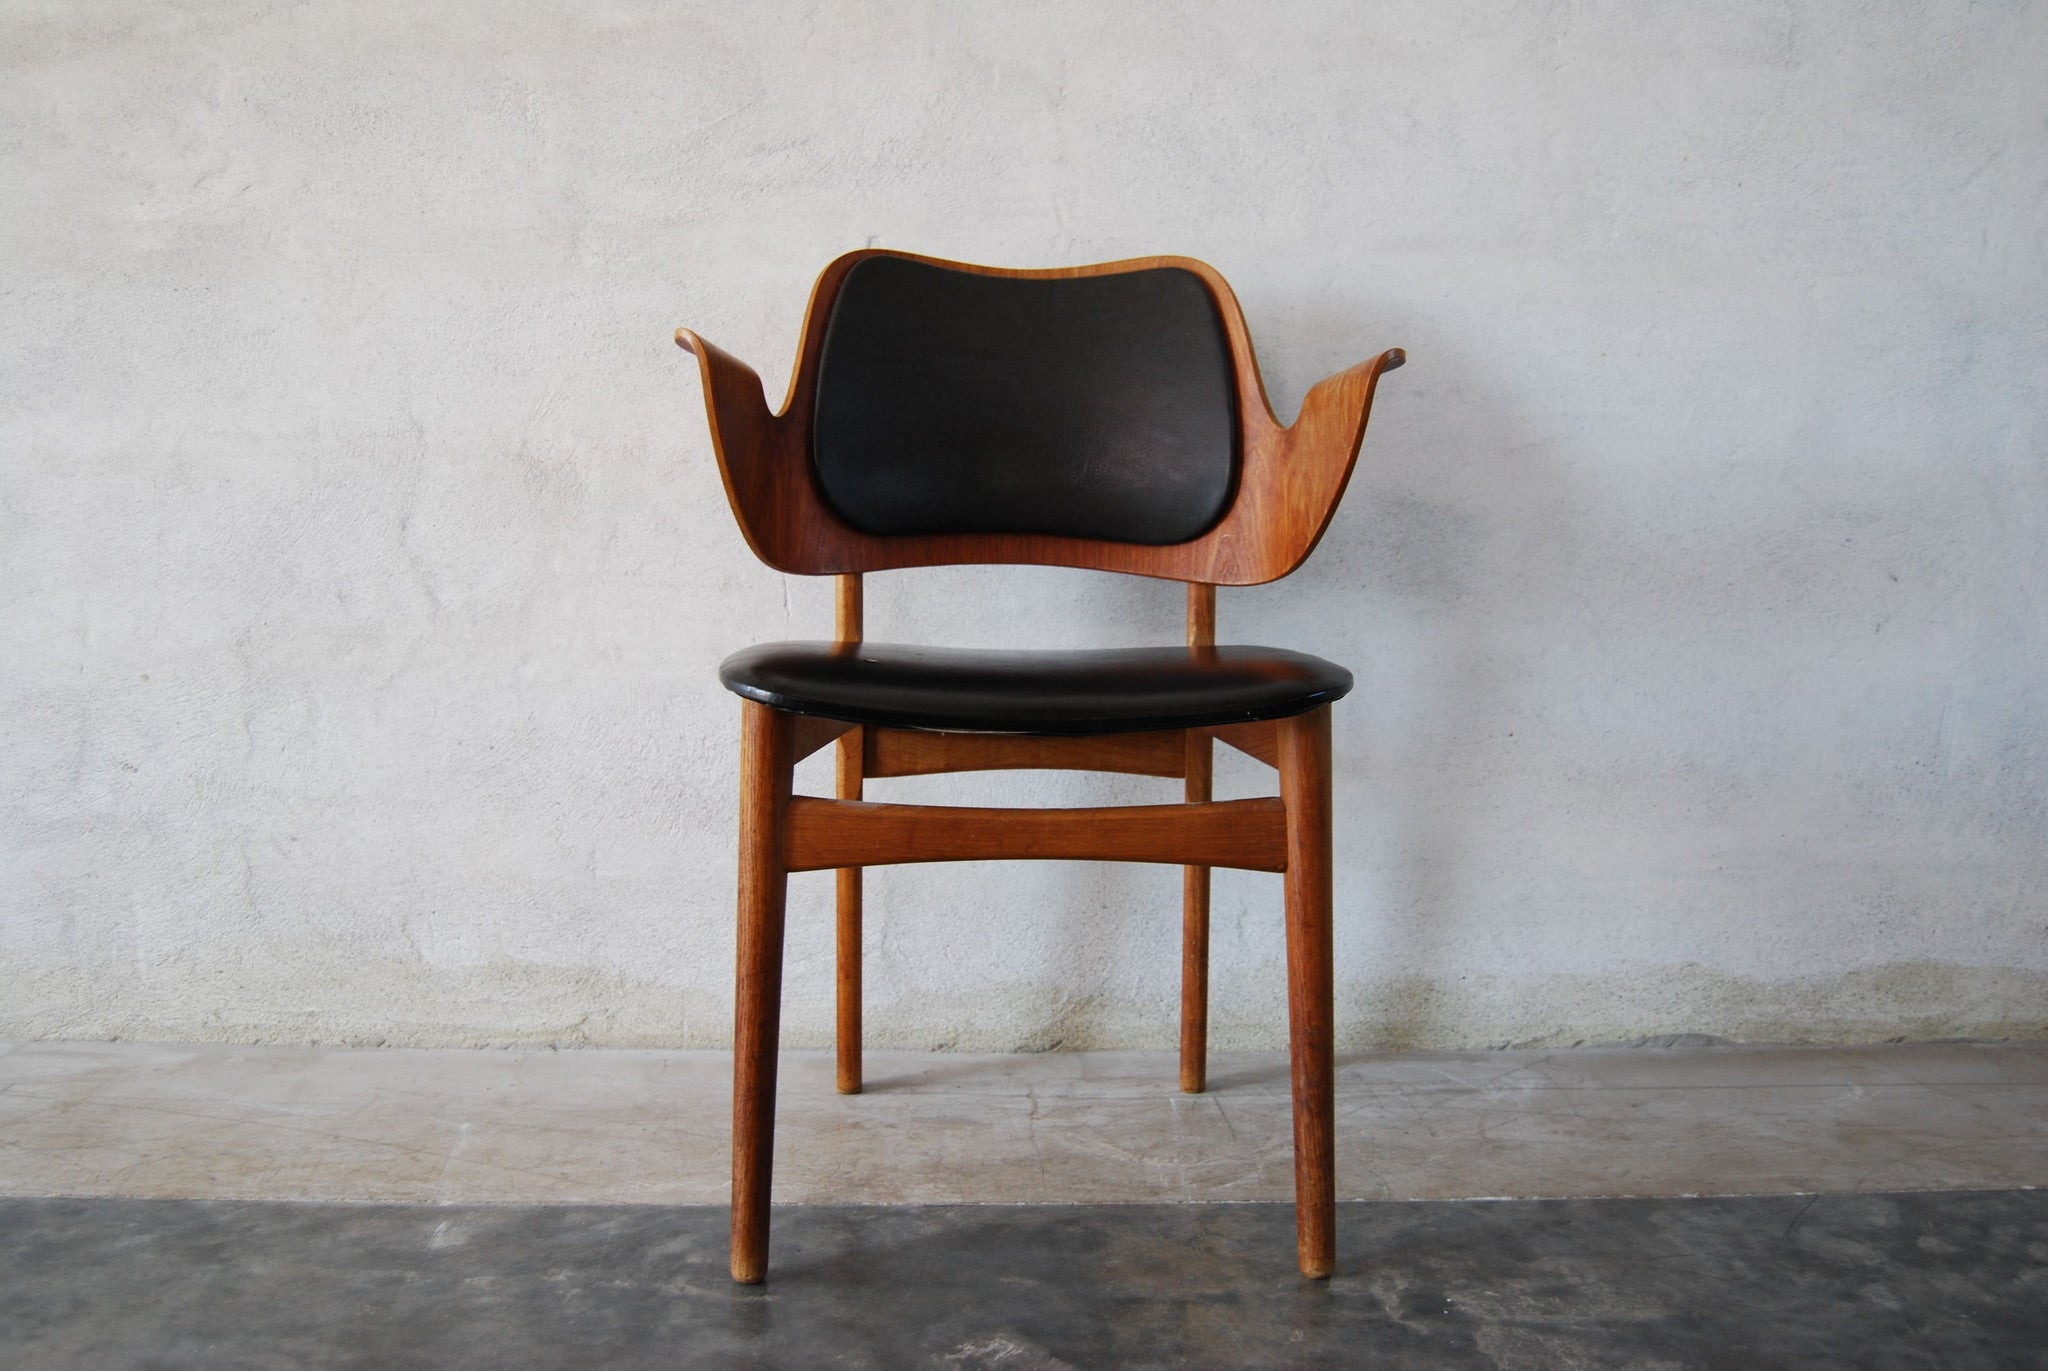 Desk/dining chair by Hans Olsen